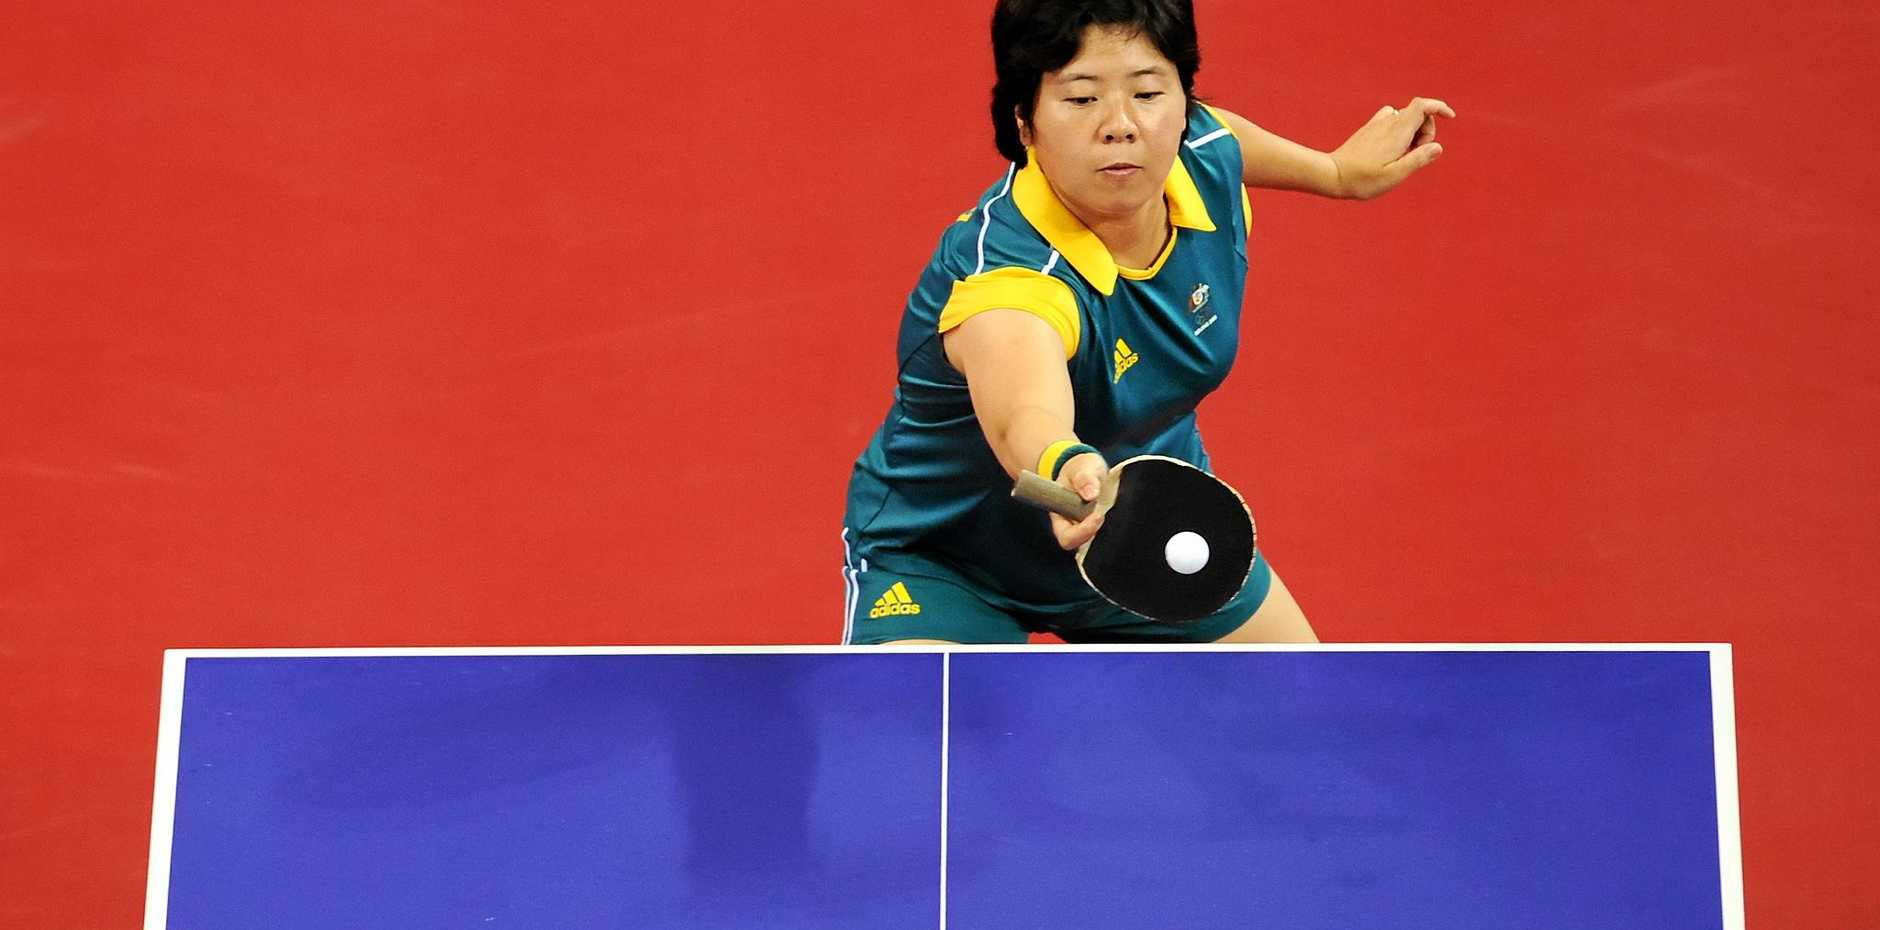 Lay equalled Australia's best table tennis result at an Olympics.